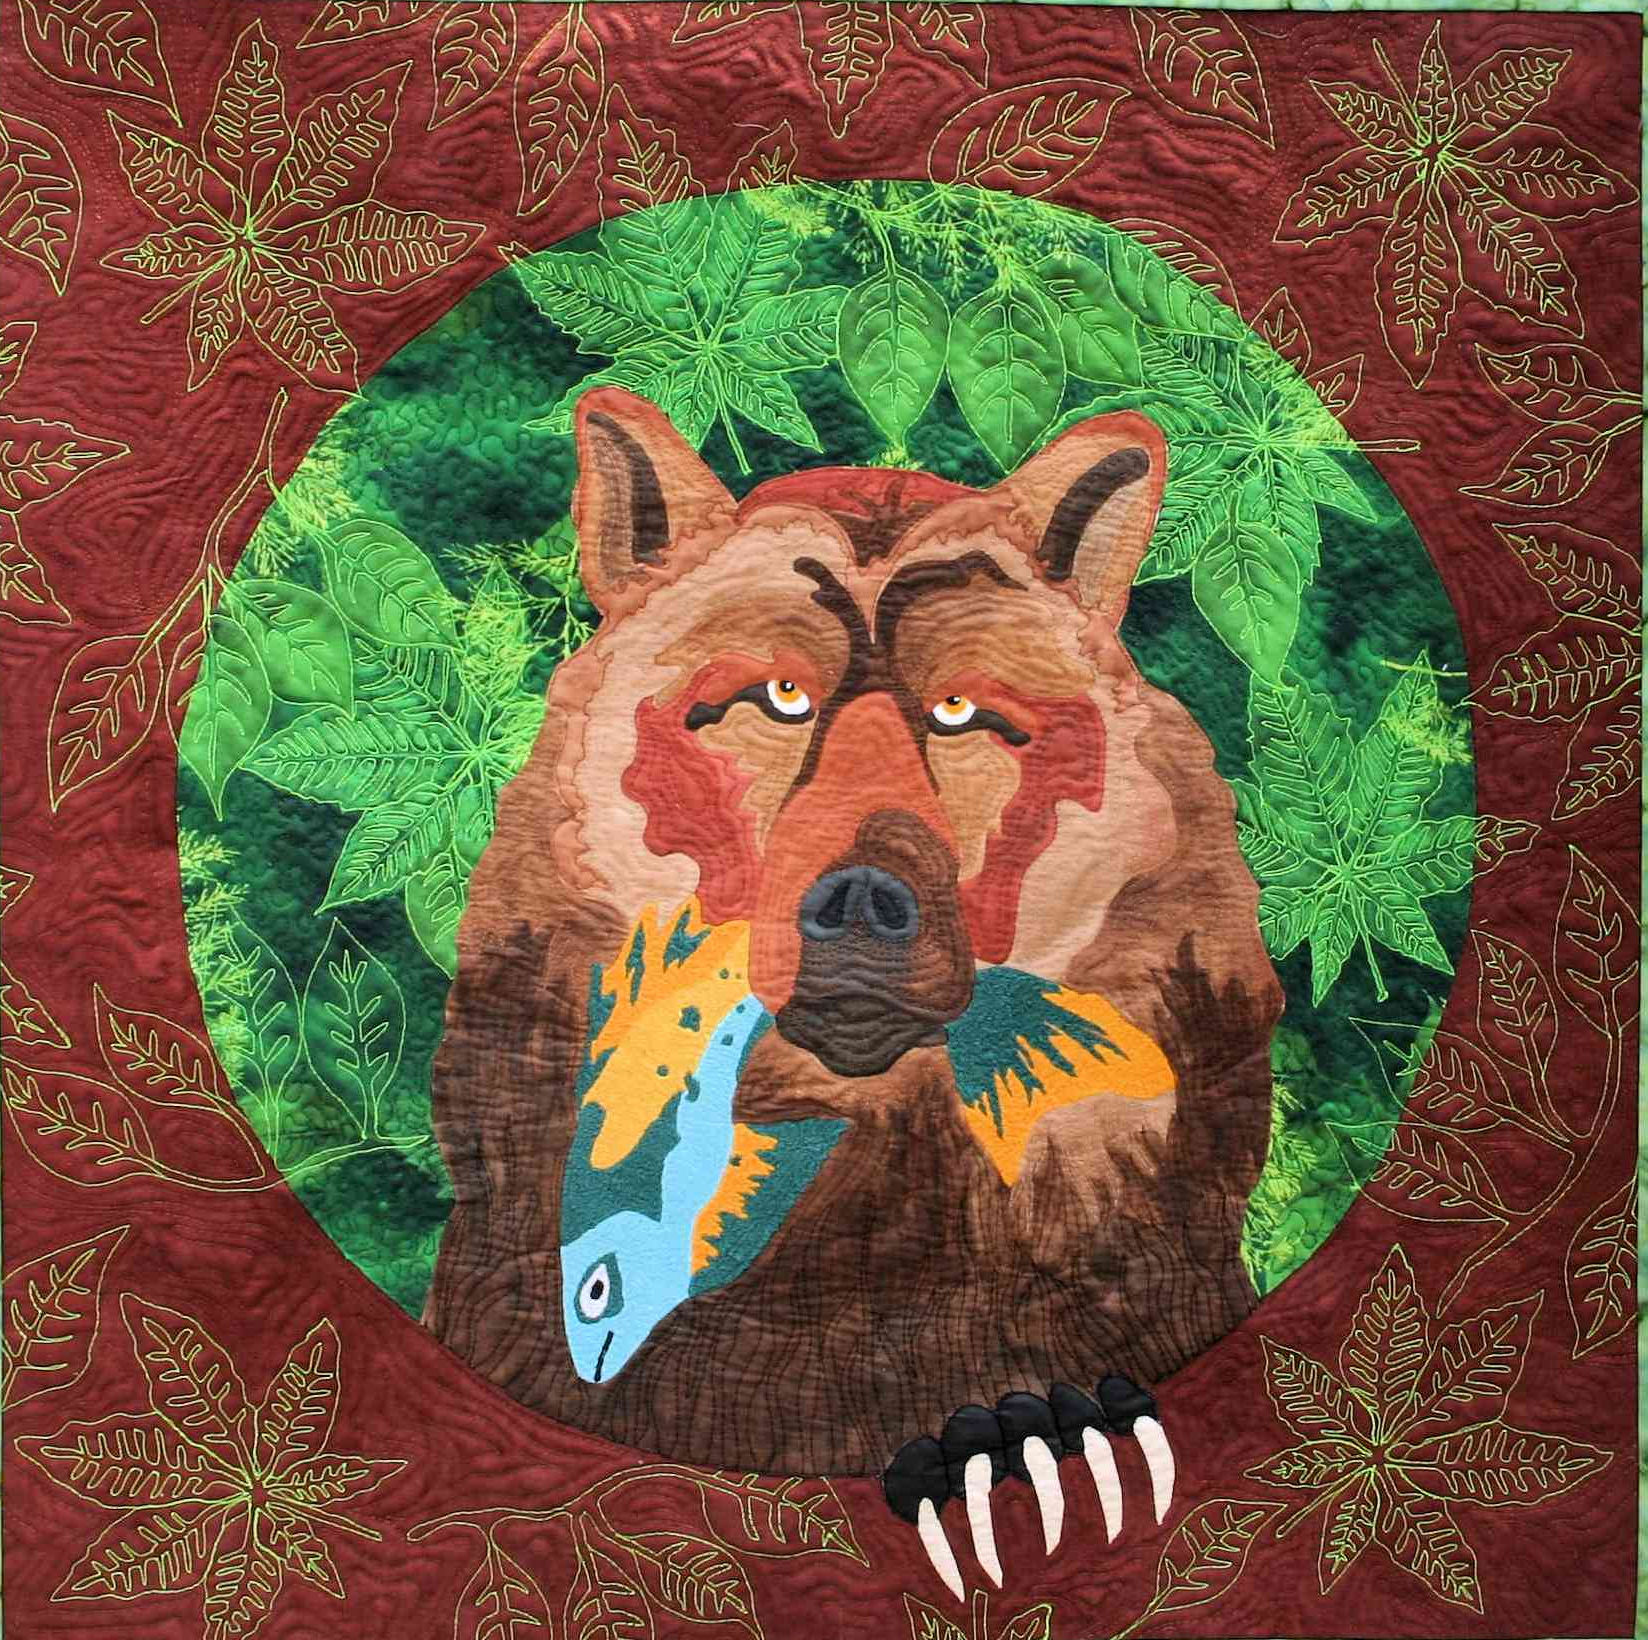 catch of the day is a fiber art work showing a smug bear holding a fish he just caught for dinner.  This was a juried finalist in the Houston International Quilt  Festival in 2014